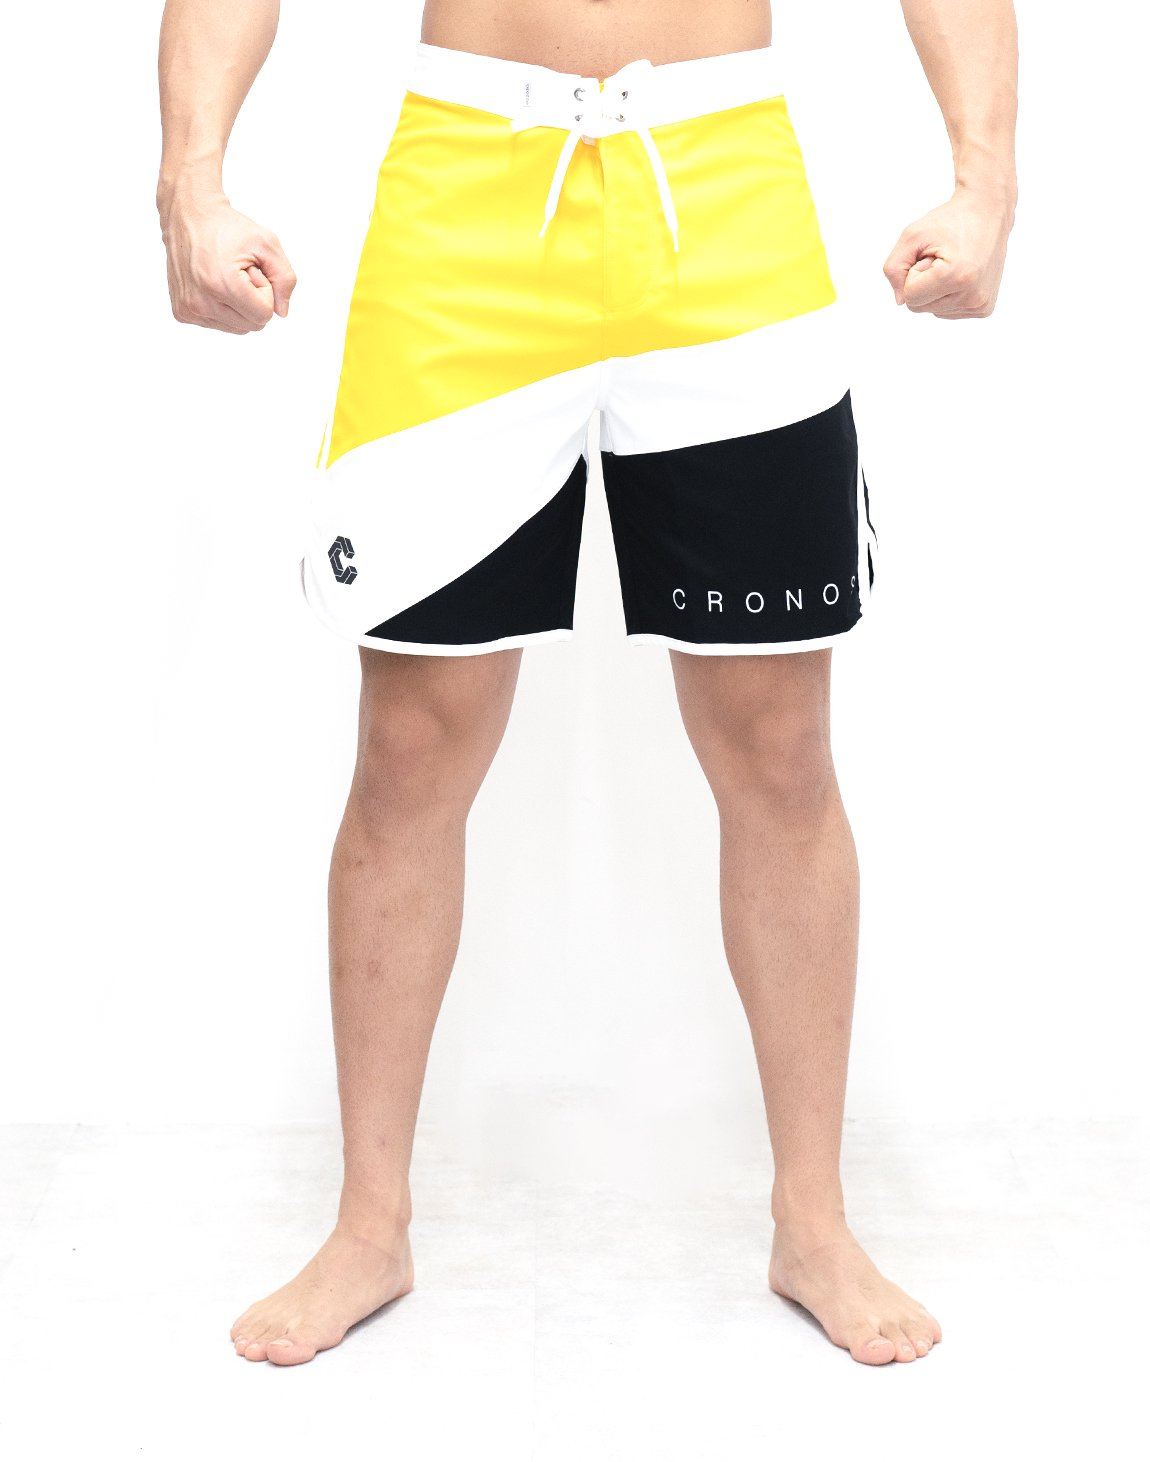 <img class='new_mark_img1' src='https://img.shop-pro.jp/img/new/icons1.gif' style='border:none;display:inline;margin:0px;padding:0px;width:auto;' />CRONOS THREE COLORS BOARD SHORTS【YELLOW】